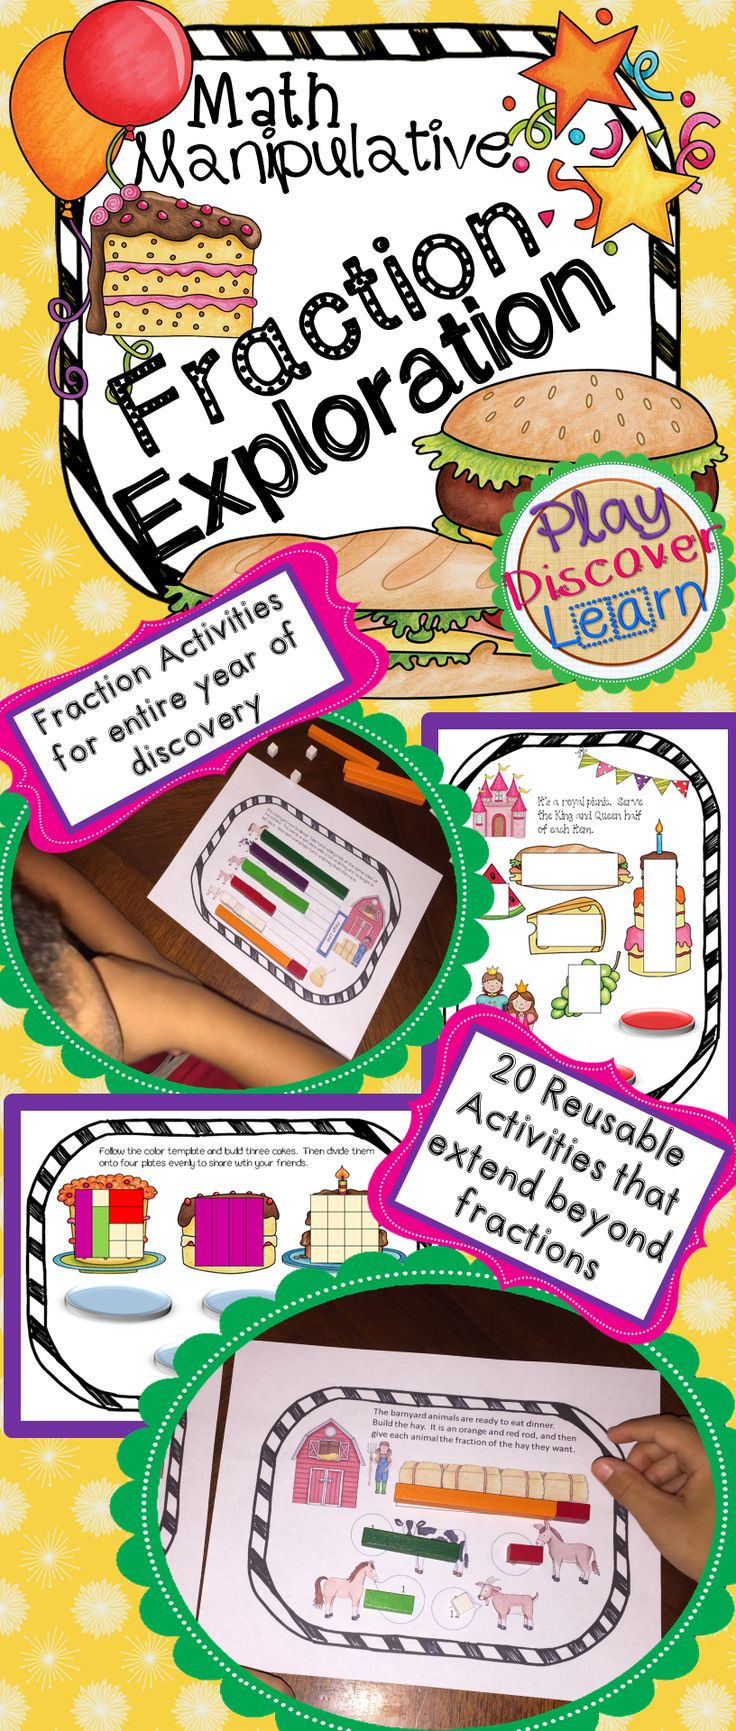 worksheet Cuisenaire Rods Worksheets 42 best cuisenaire rods images on pinterest kindergarten math rod activities this booklet includes over 20 fraction that are great for all